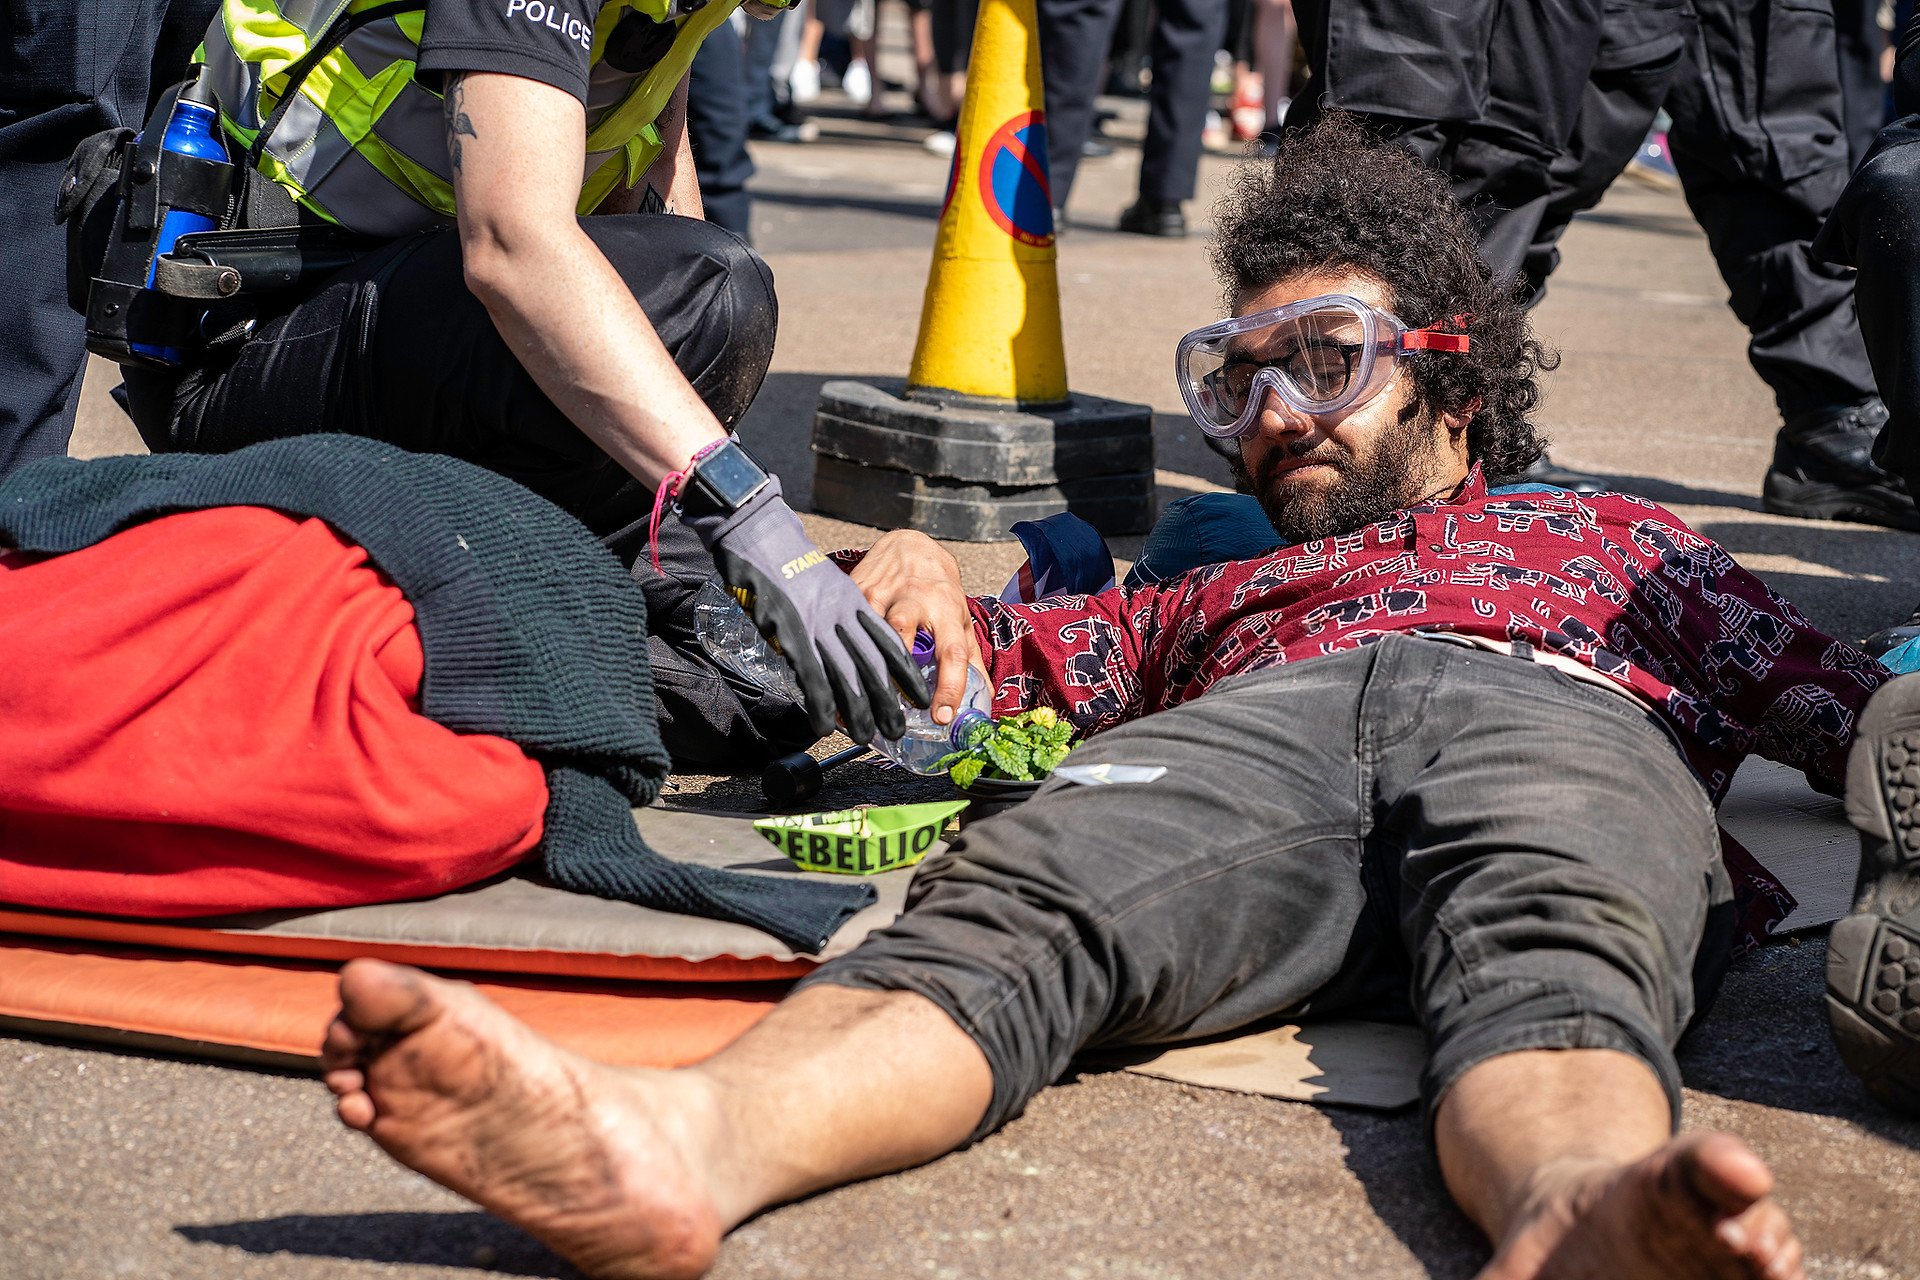 An XR arrest able waters his plant whilst chained to another protestor